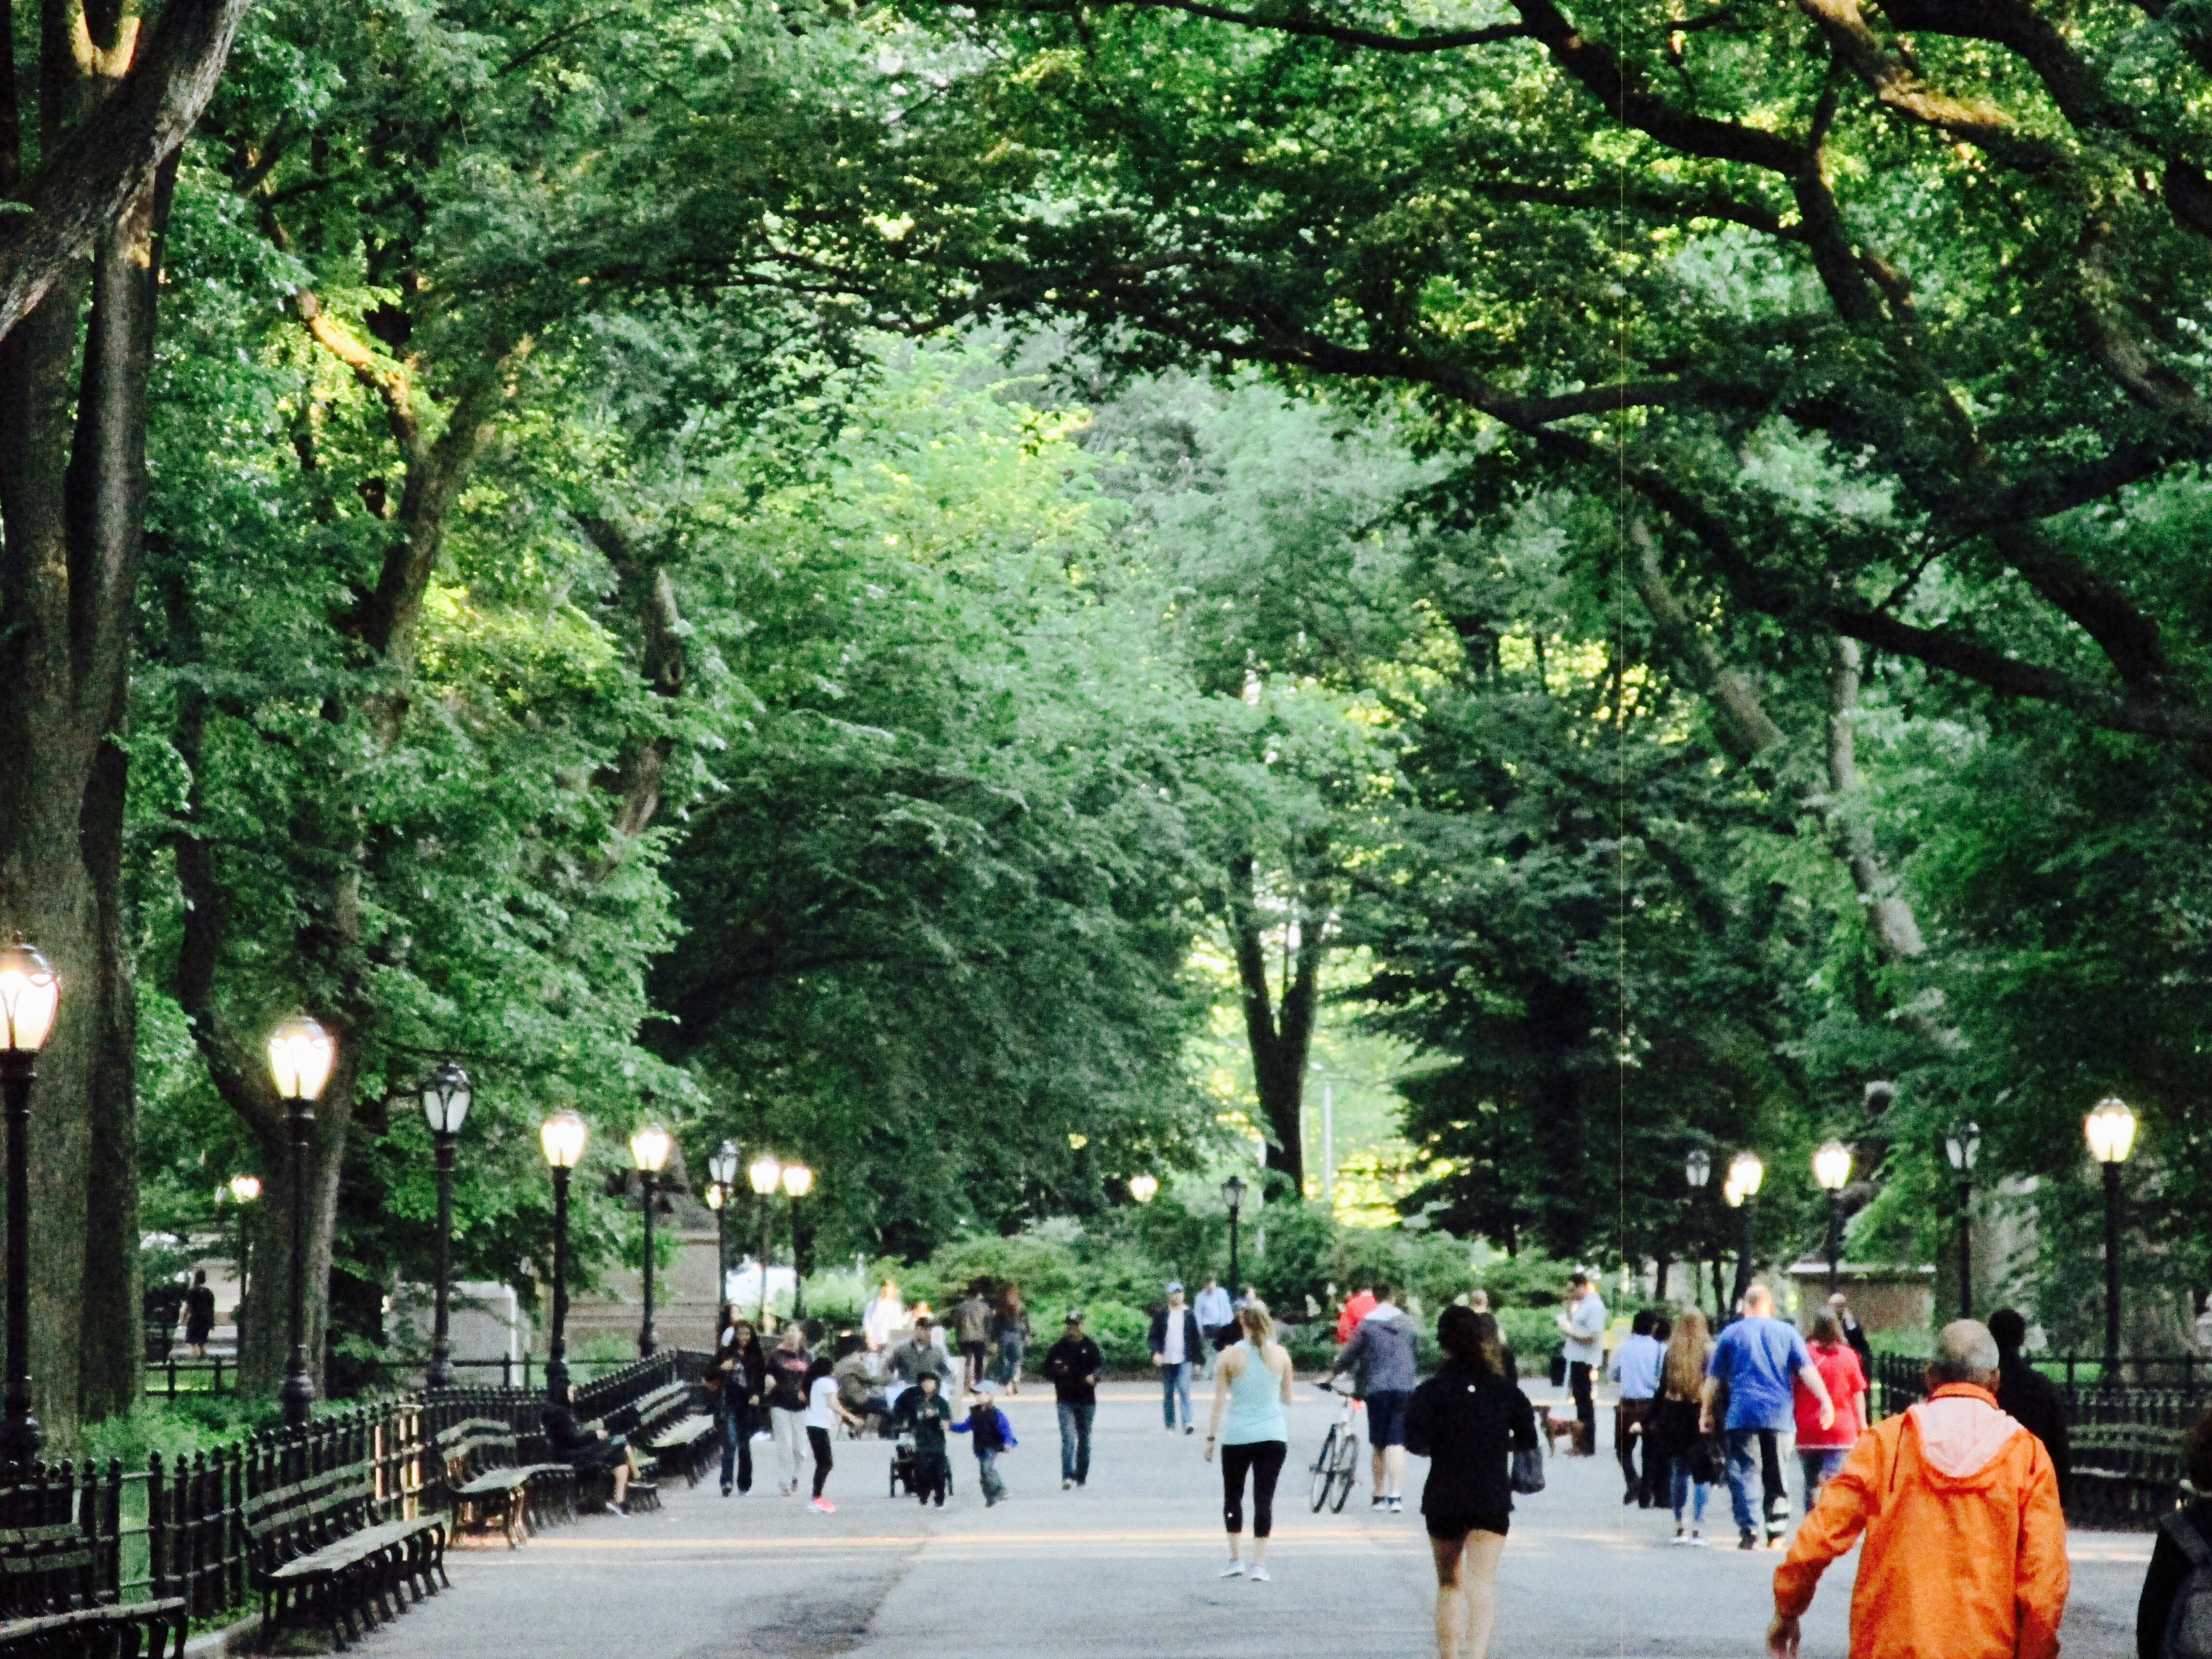 People of New York - by Urban Treetops